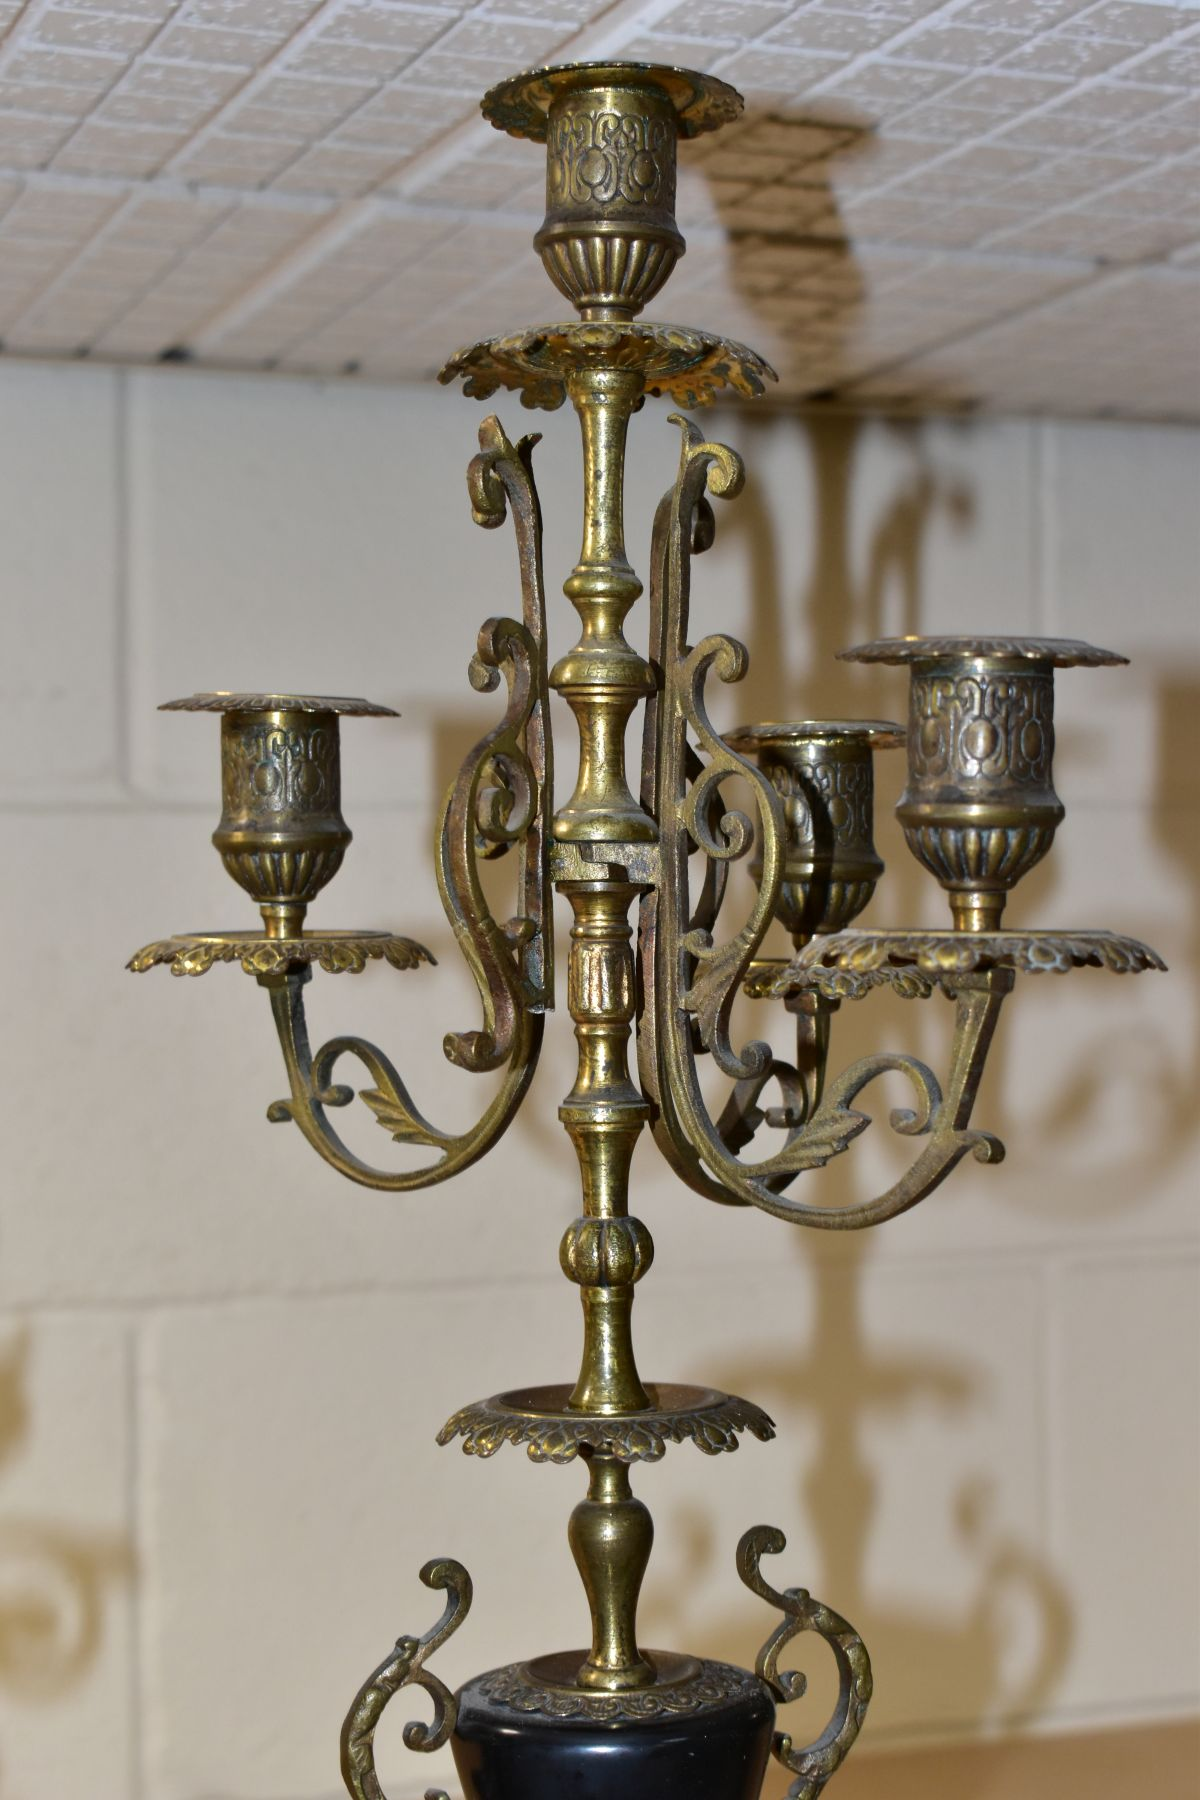 A LATE 19TH CENTURY BLACK SLATE, MARBLE AND GILT METAL CLOCK GARNITURE, the clock with urn shaped - Image 9 of 13